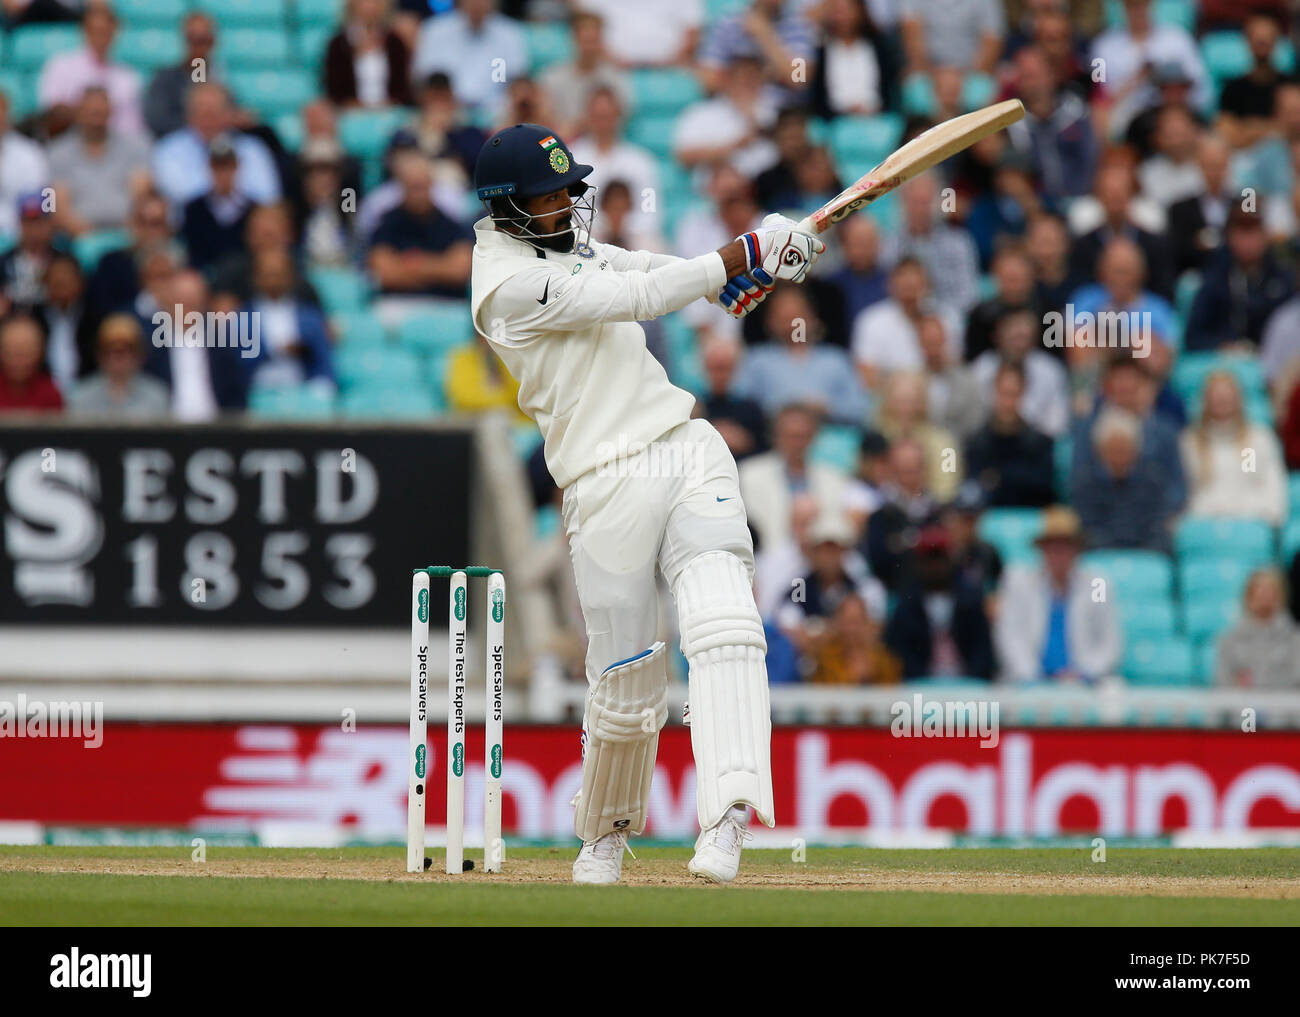 Kia Oval, London, UK. 11th Sep, 2018. Specsavers International Test Match Cricket, 5th test, day 5; KL Rahul of India pulls the ball away to the on side Credit: Action Plus Sports/Alamy Live News - Stock Image